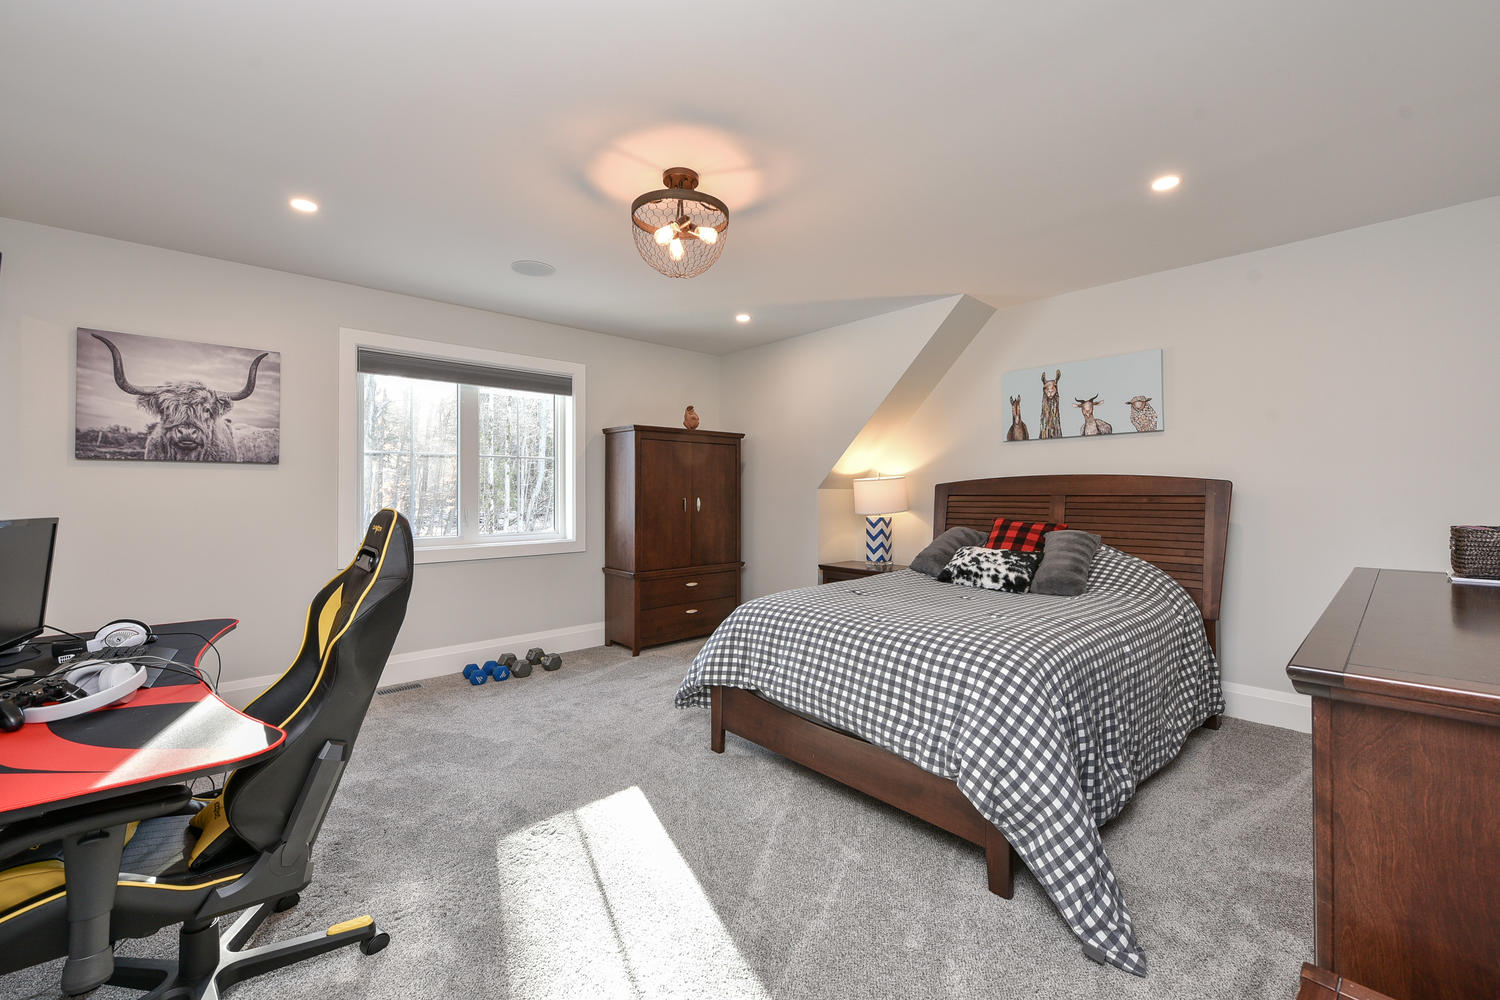 Bedroom - Eclectic Country Project In Renfrew